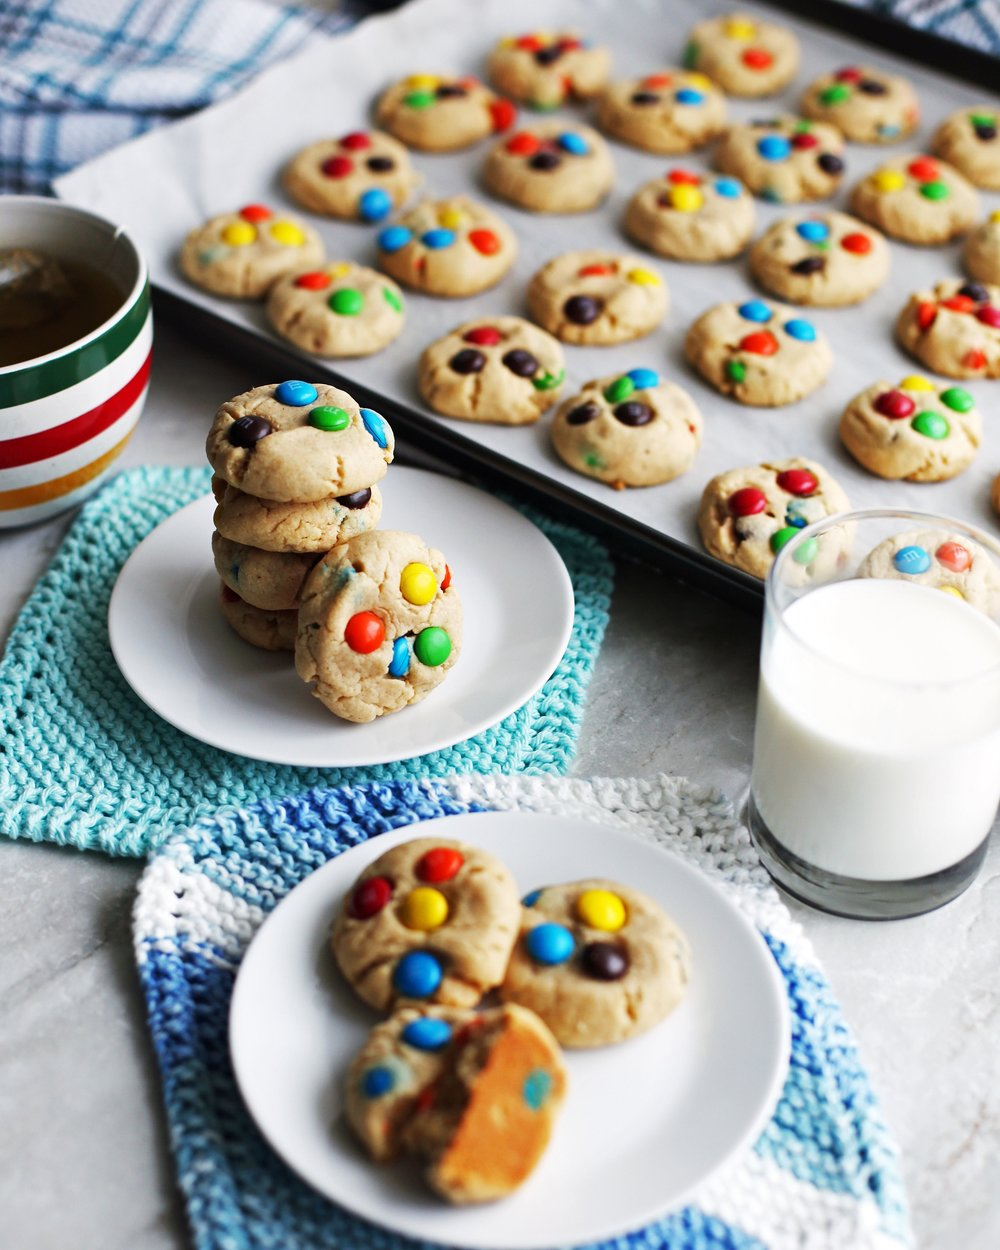 Two plates of Chewy Peanut Butter Cookies with M&M's with cookies on a baking sheet in the background.